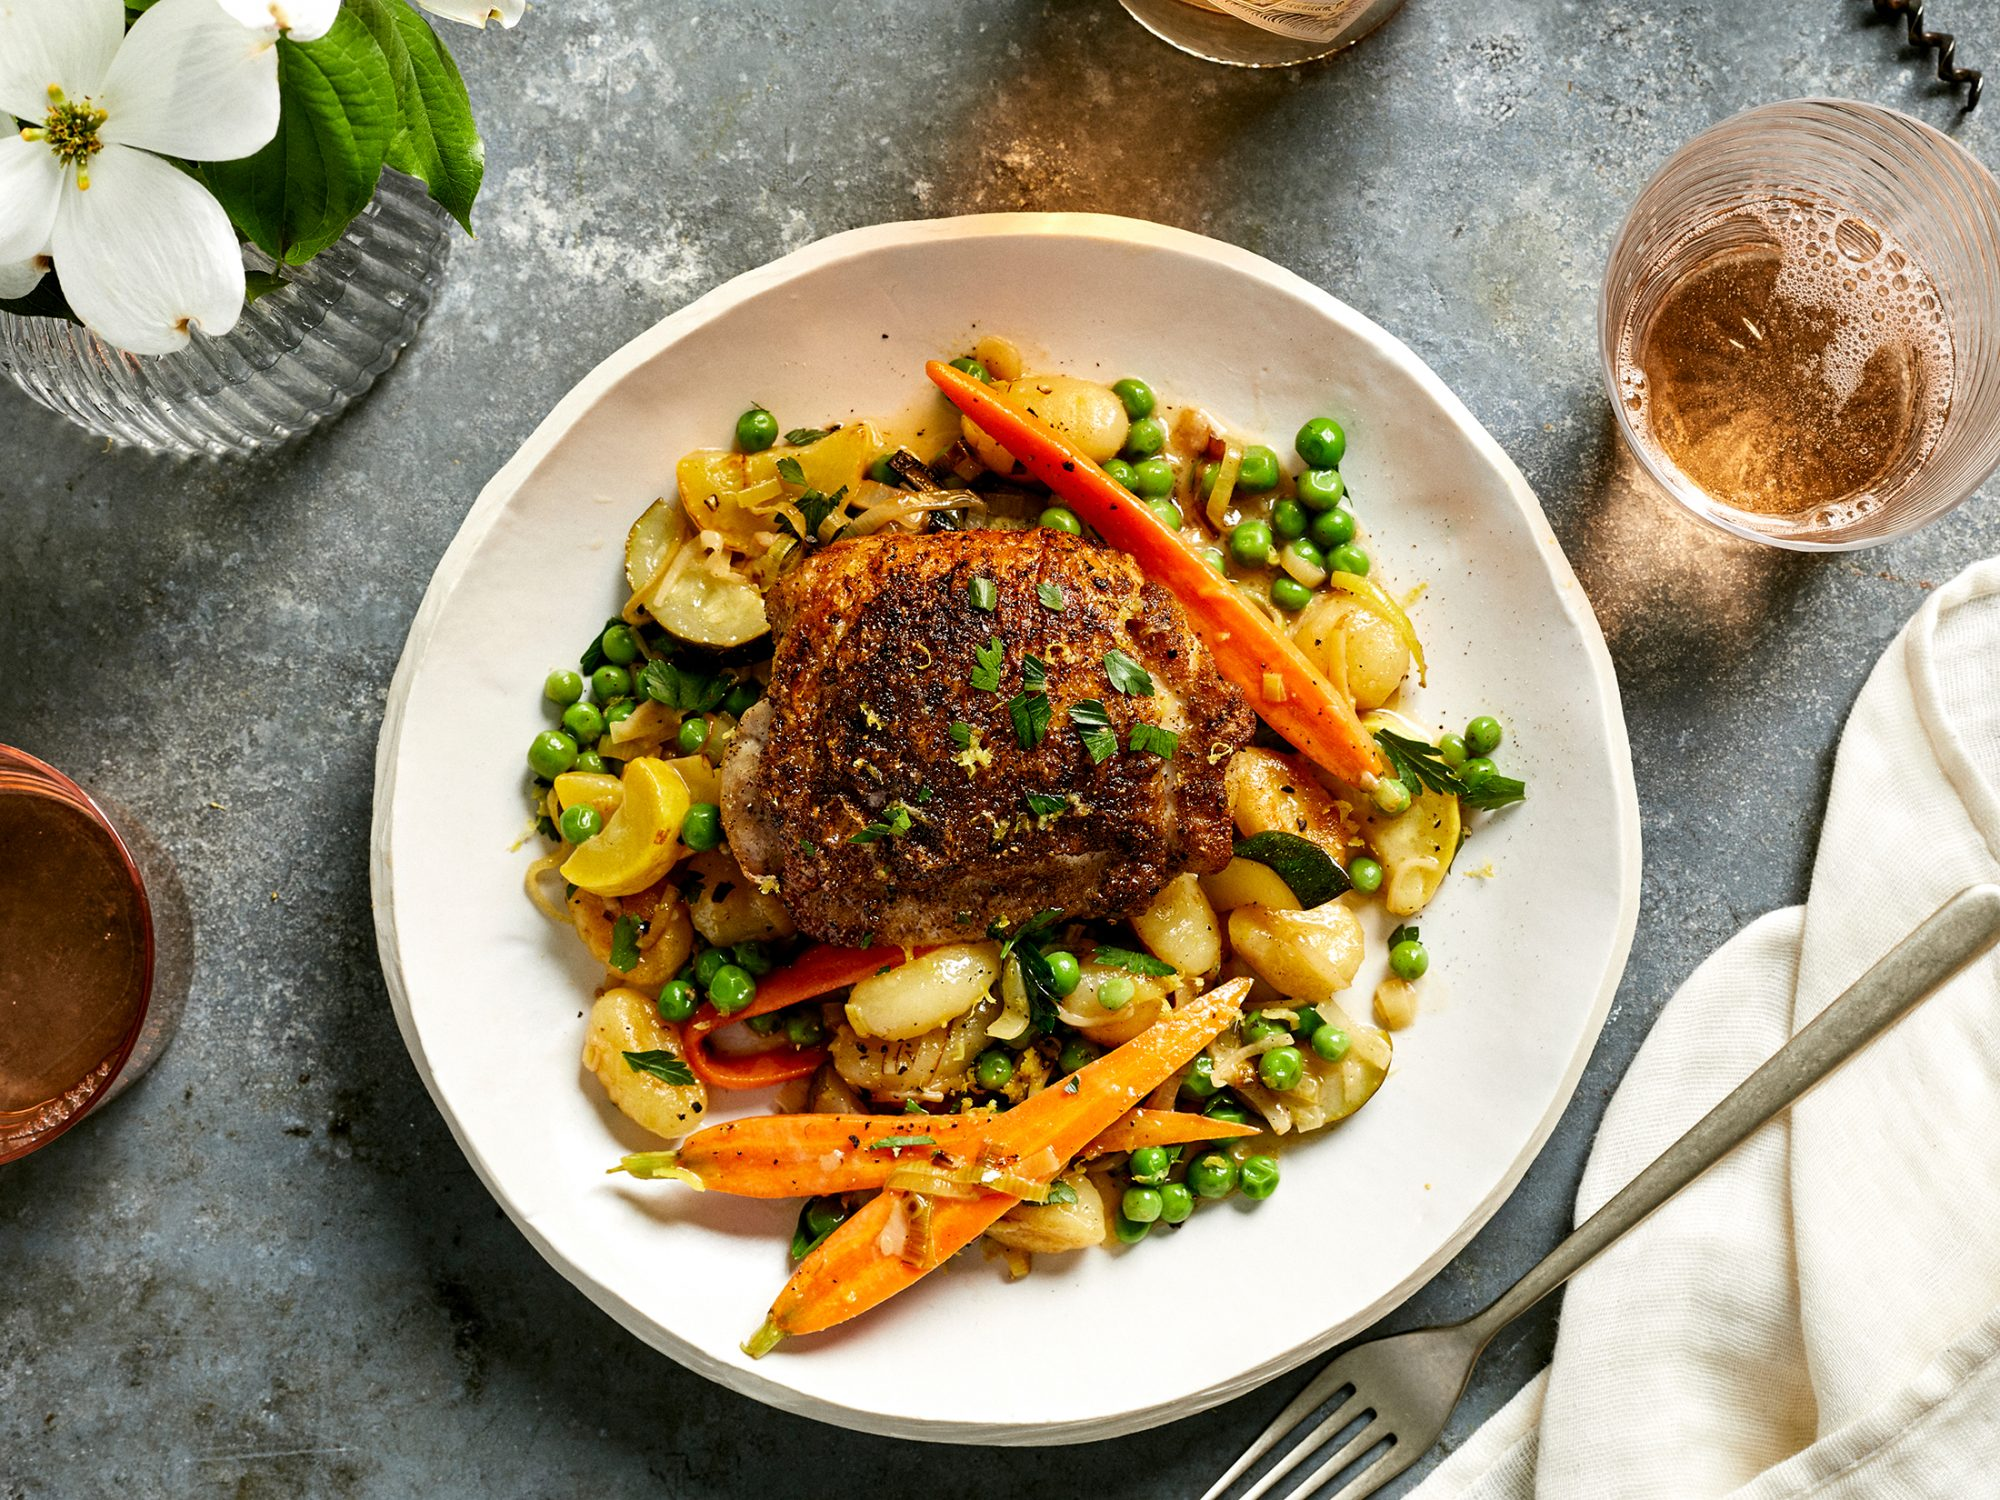 Coriander Chicken Thighs with Spring Vegetables, Gnocchi, and Lemon-Butter Sauce